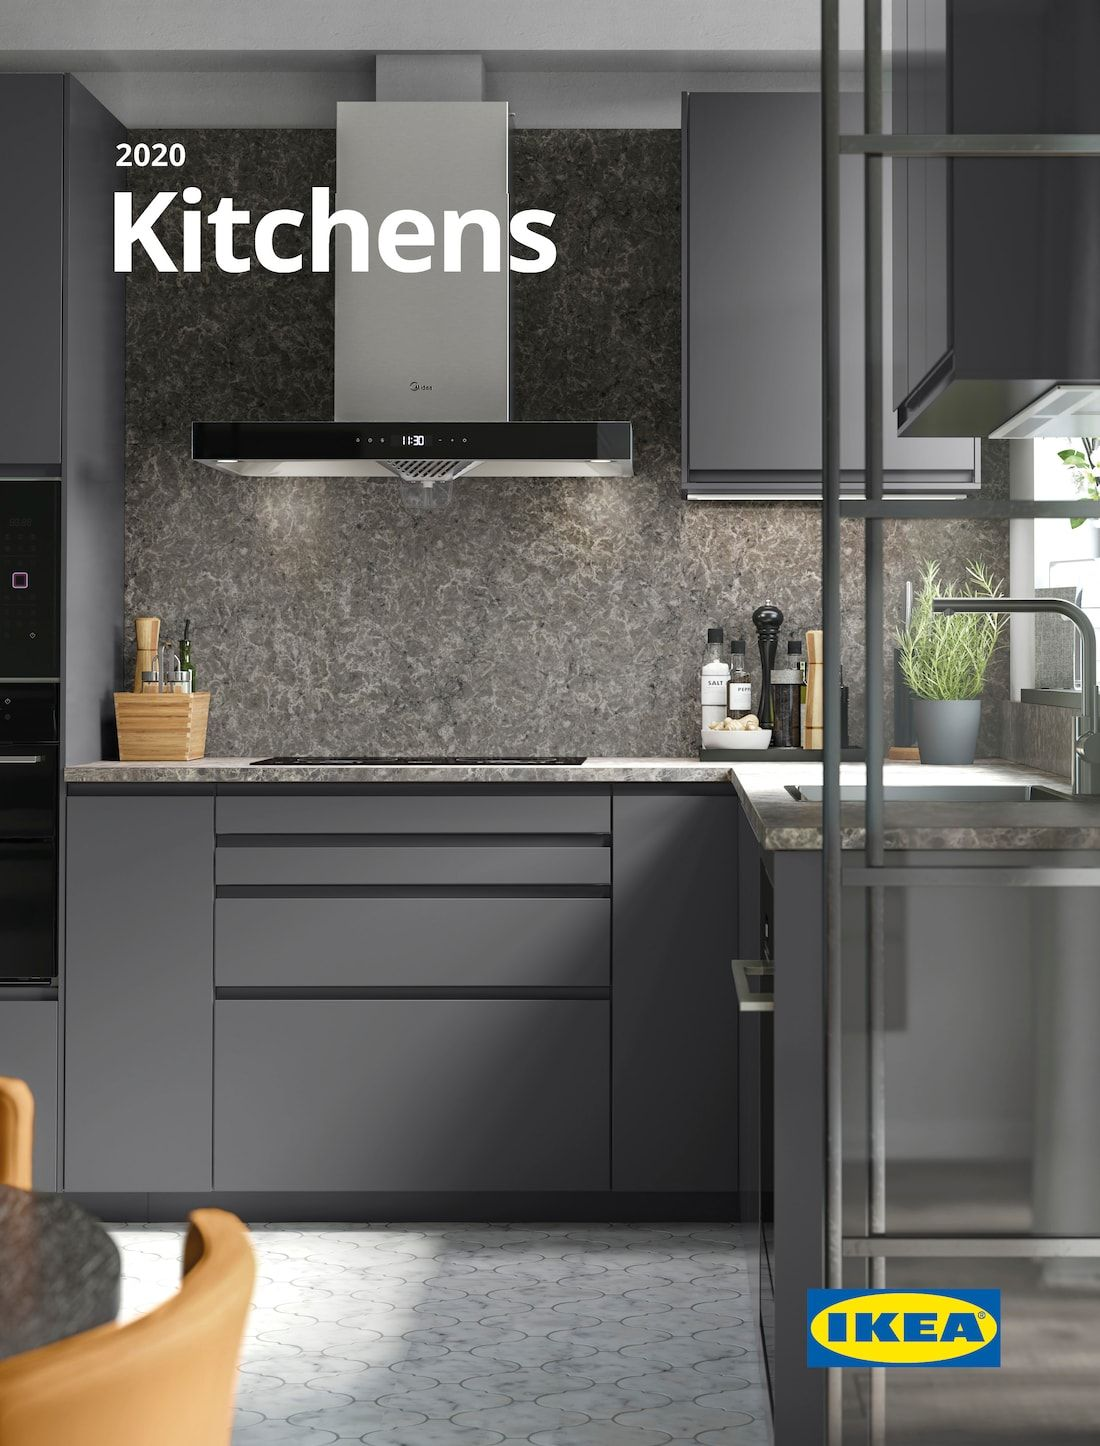 Catalogue Brochures In 2020 Ikea Metod Kitchen Ikea Catalog Ikea Kitchen